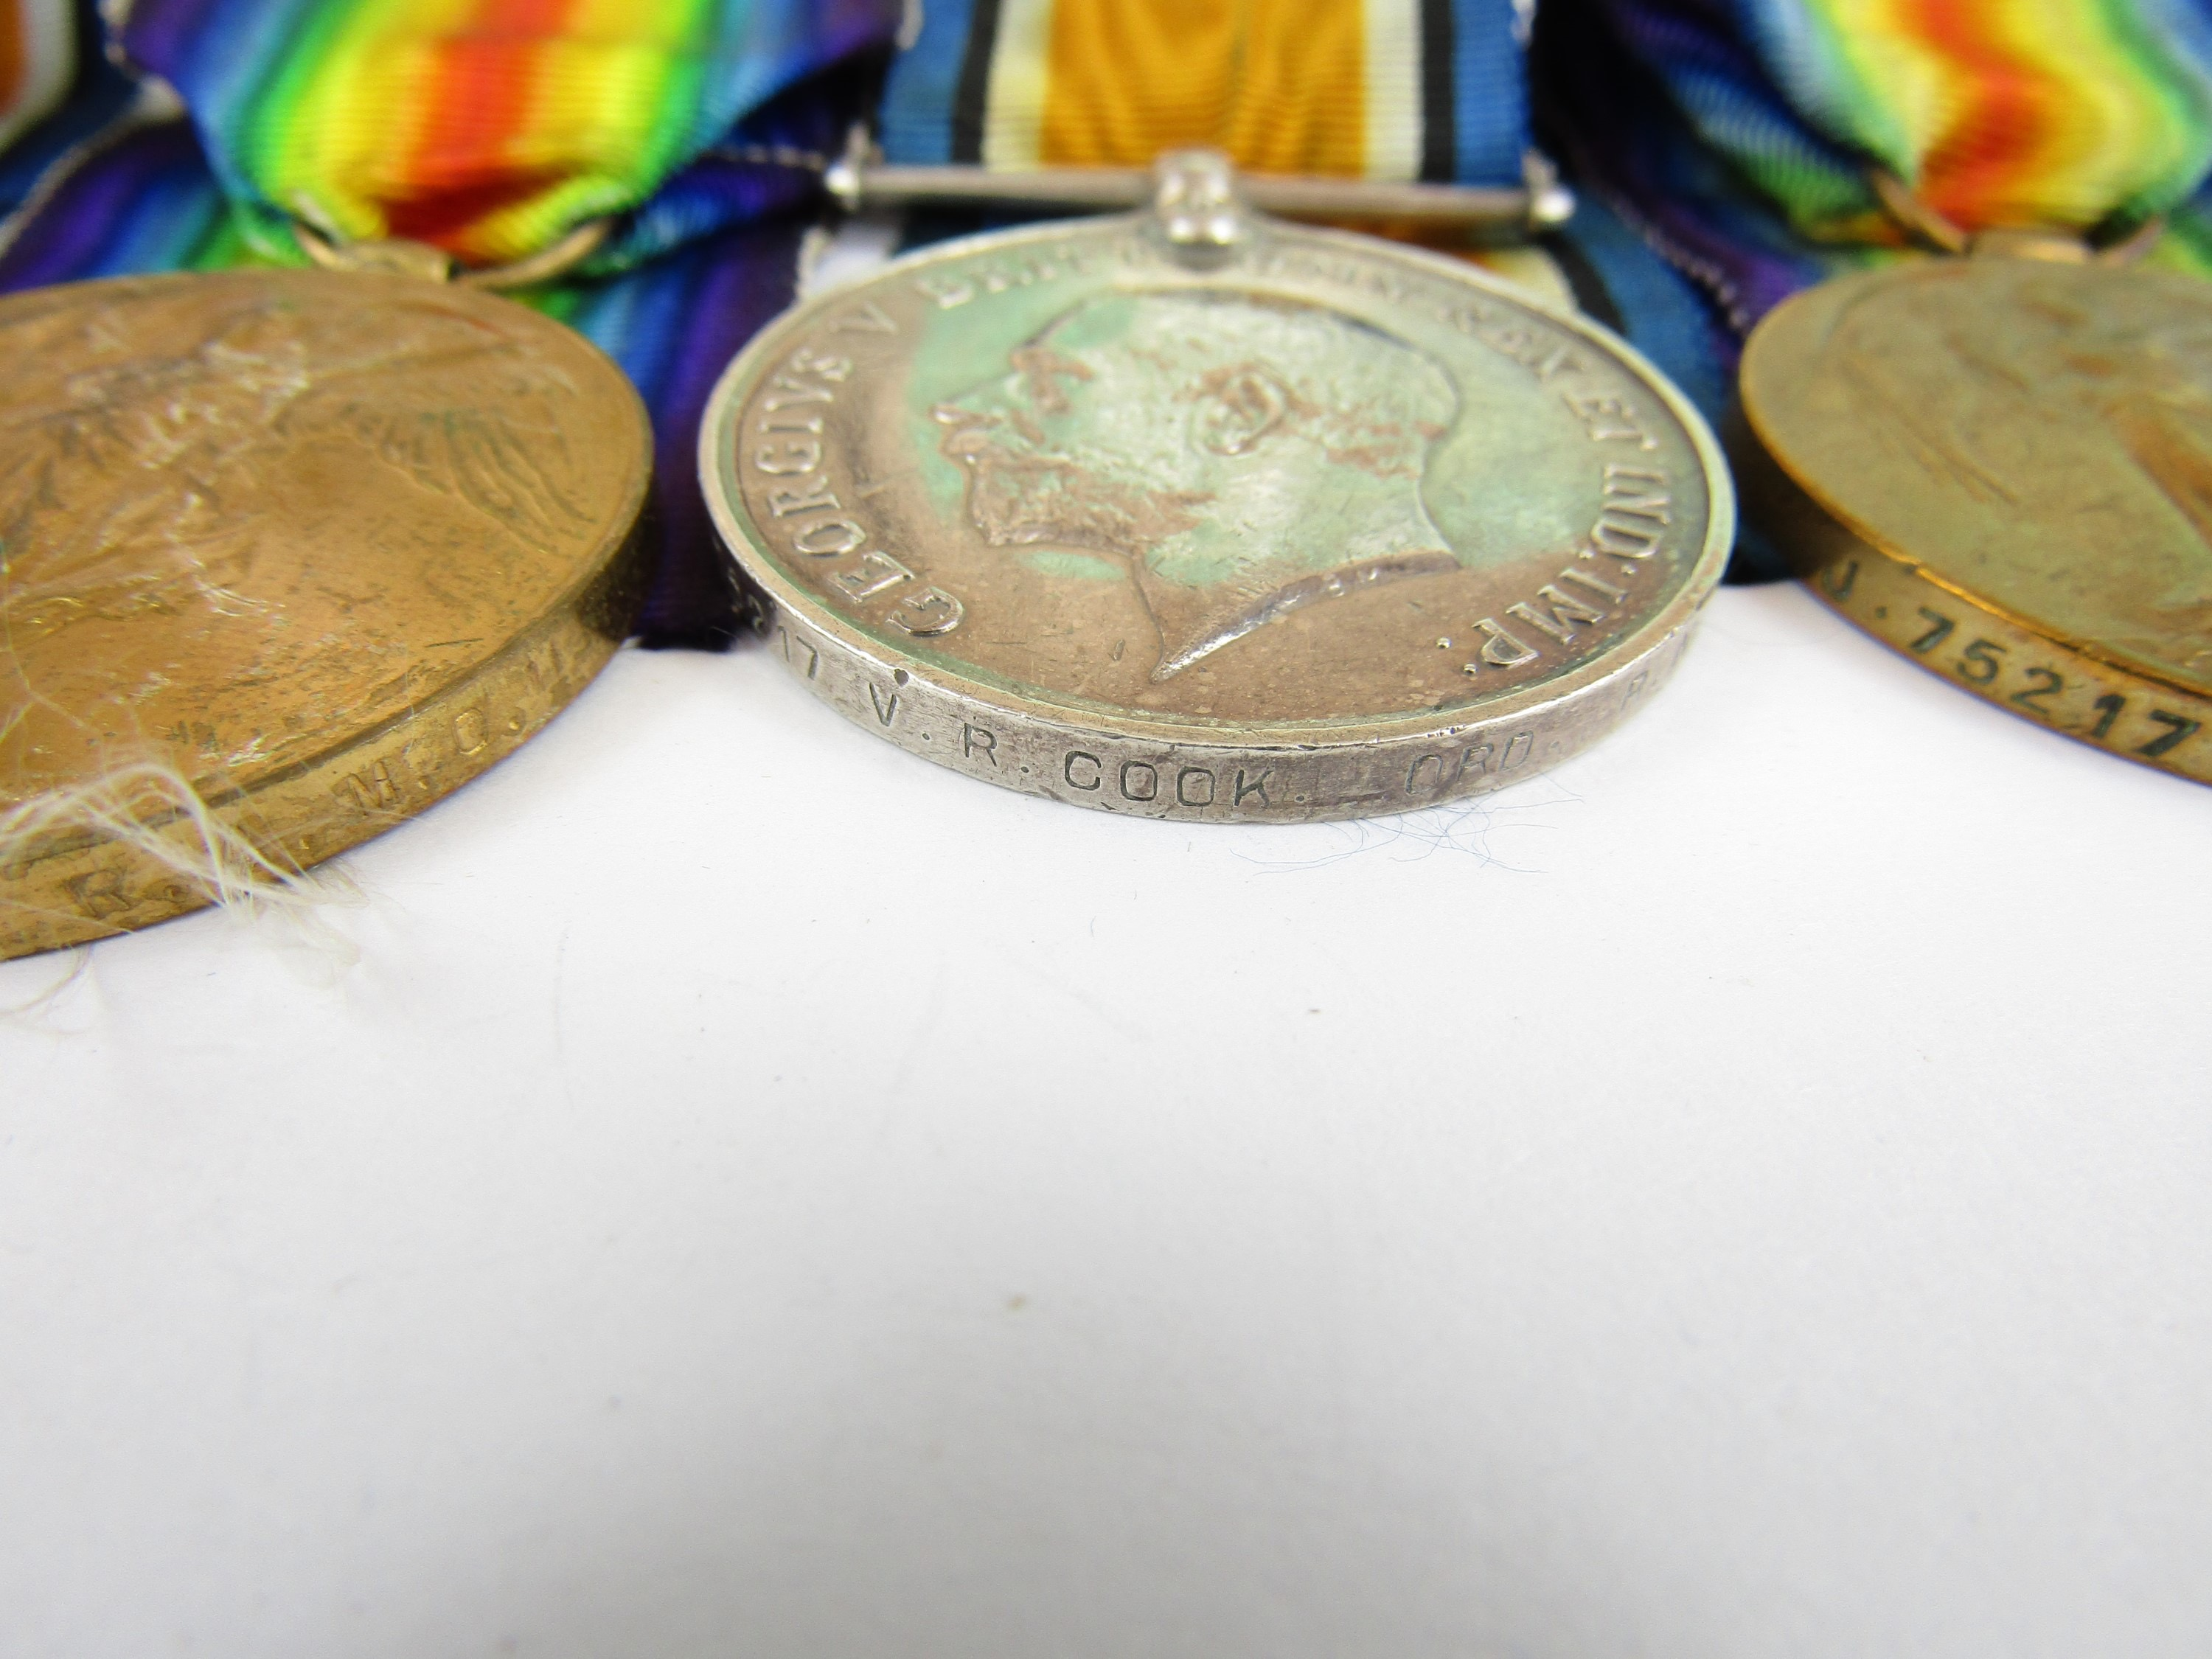 Lot 18 - British War and Victory Medal pairs respectively to J75217 V R Cook, RN and 110723 A Cpl W